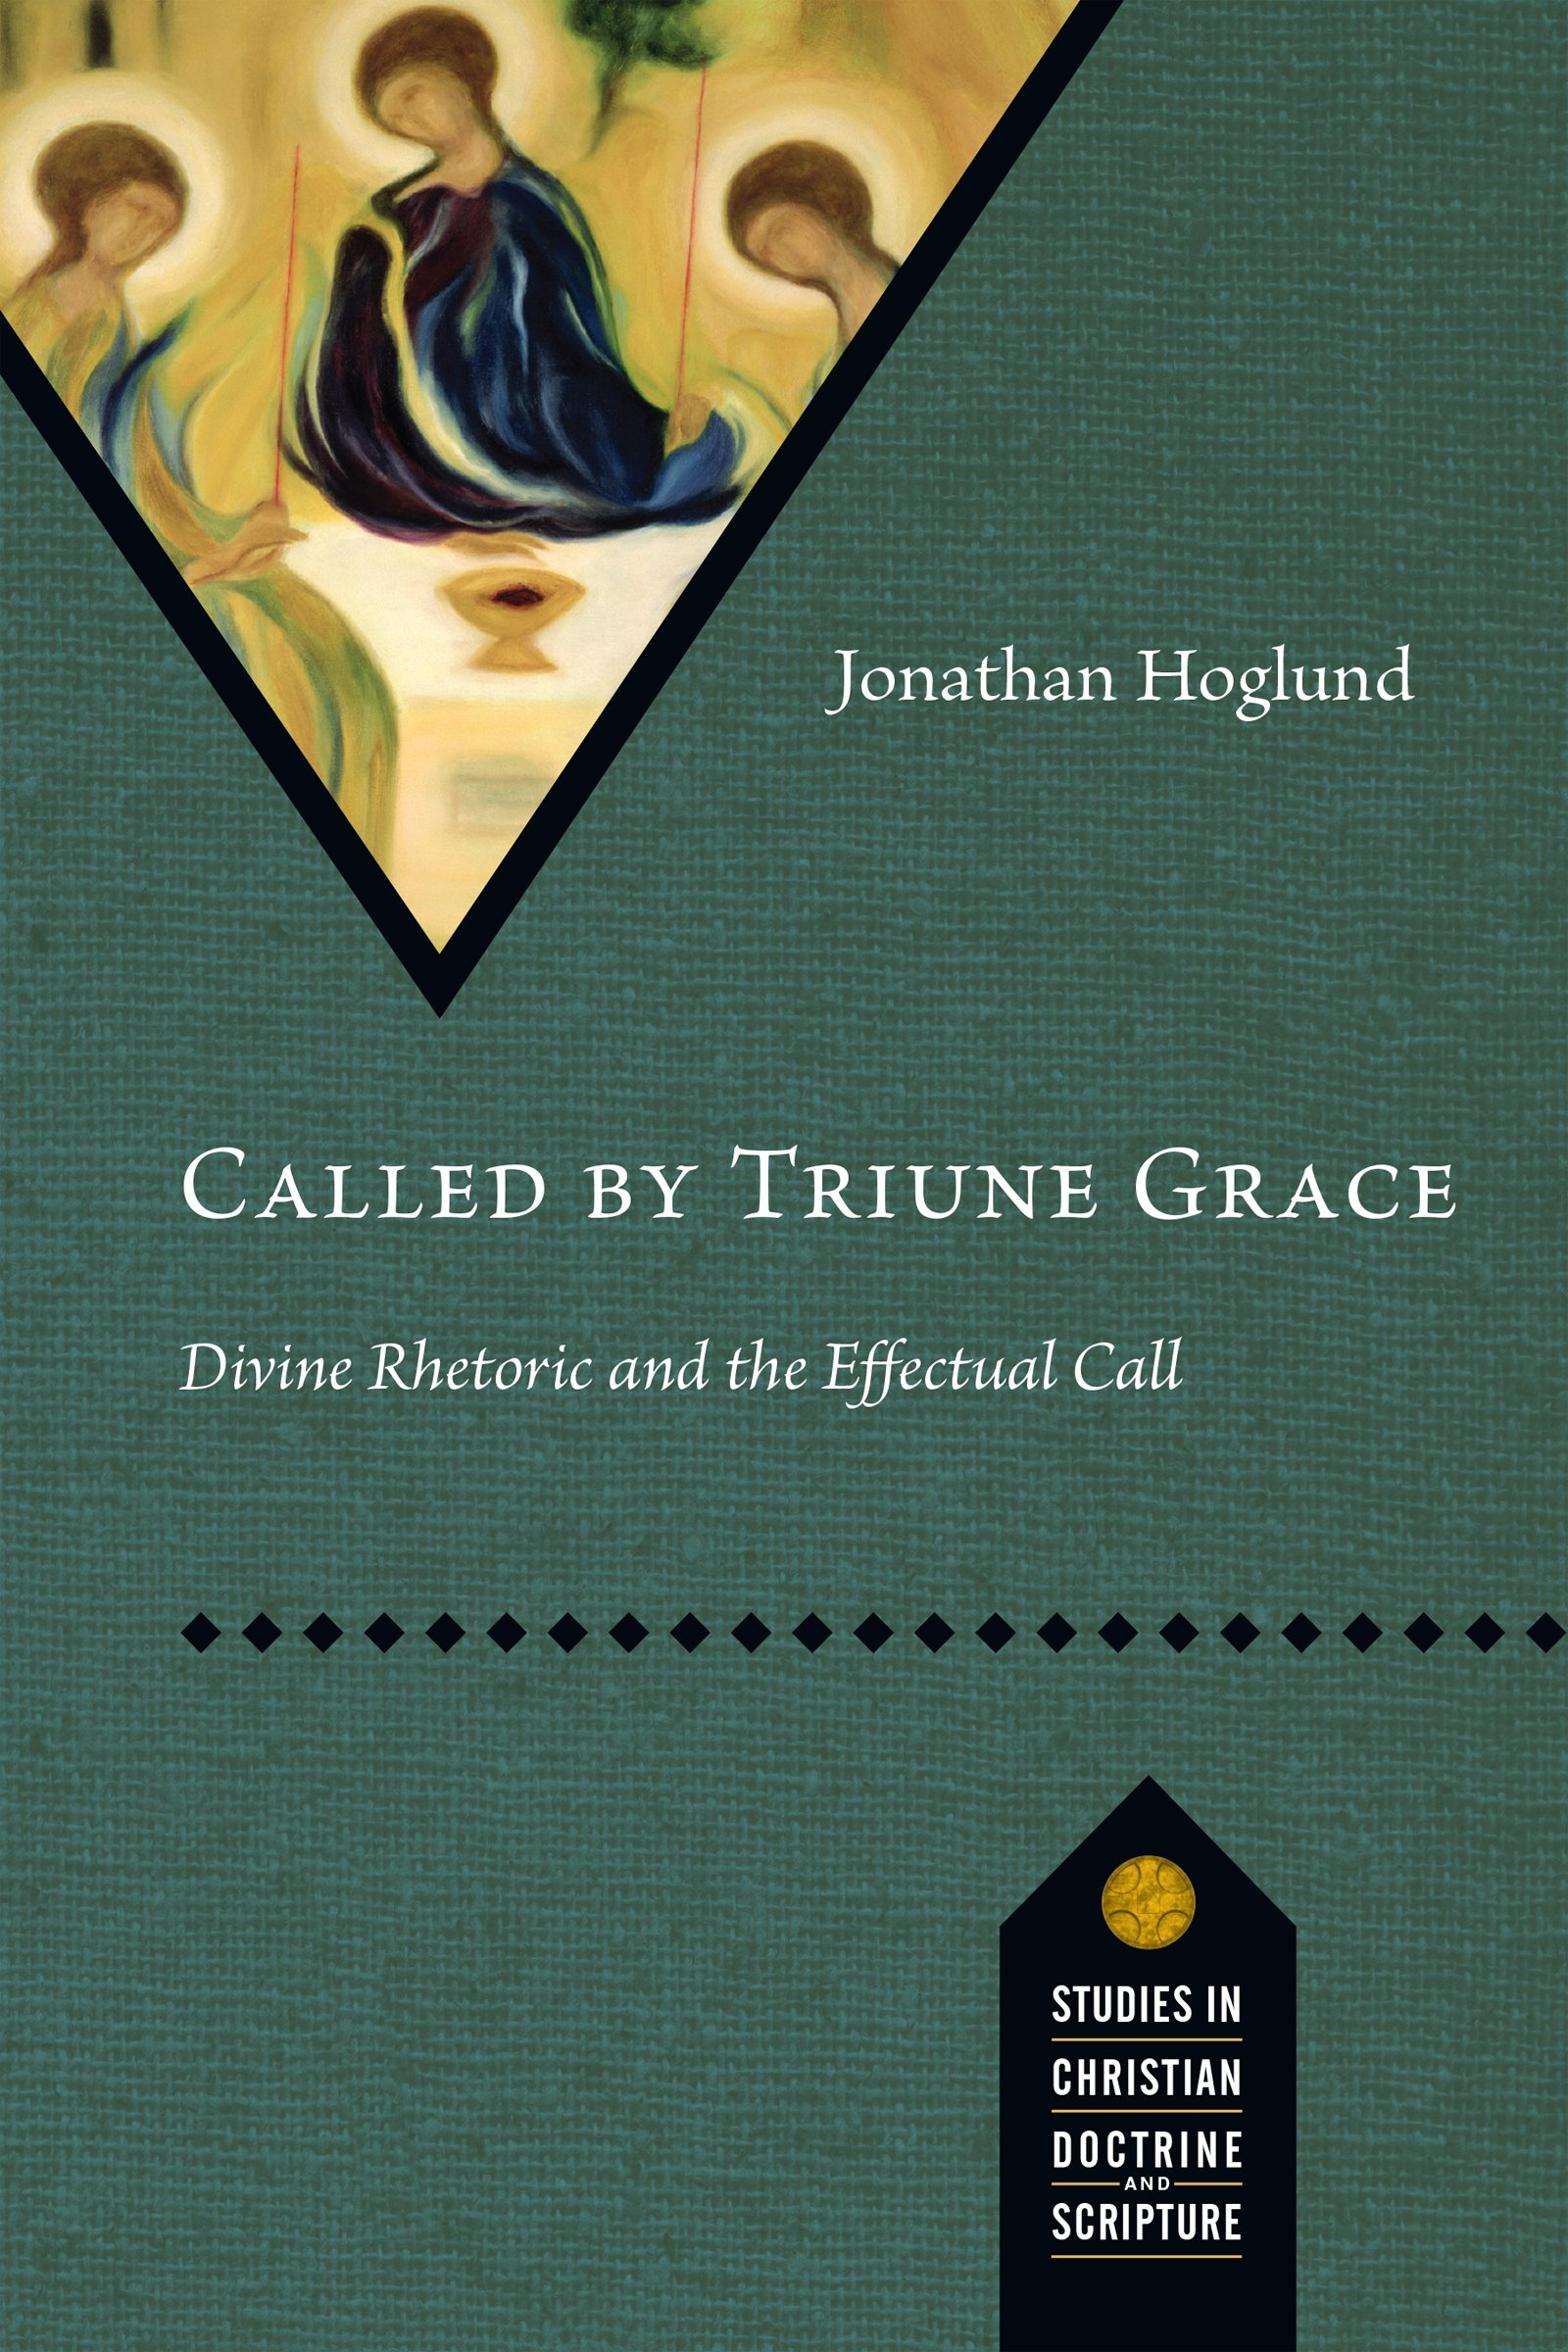 called by triune grace divine rhetoric and the effectual call